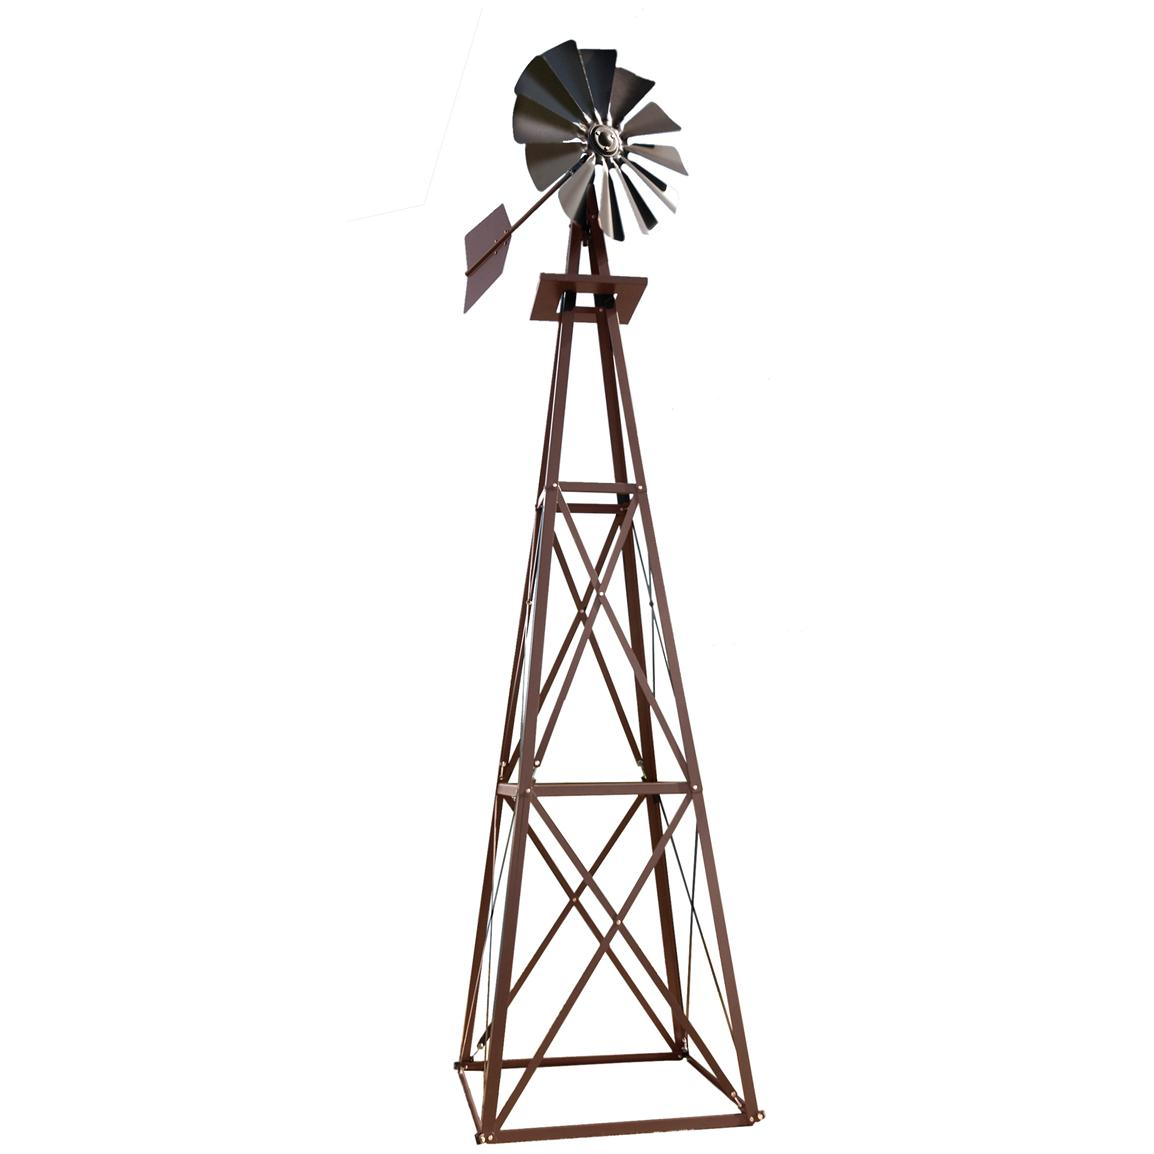 Outdoor Water Solutions® Ornamental Large Powder-coated Backyard Windmill, Bronze